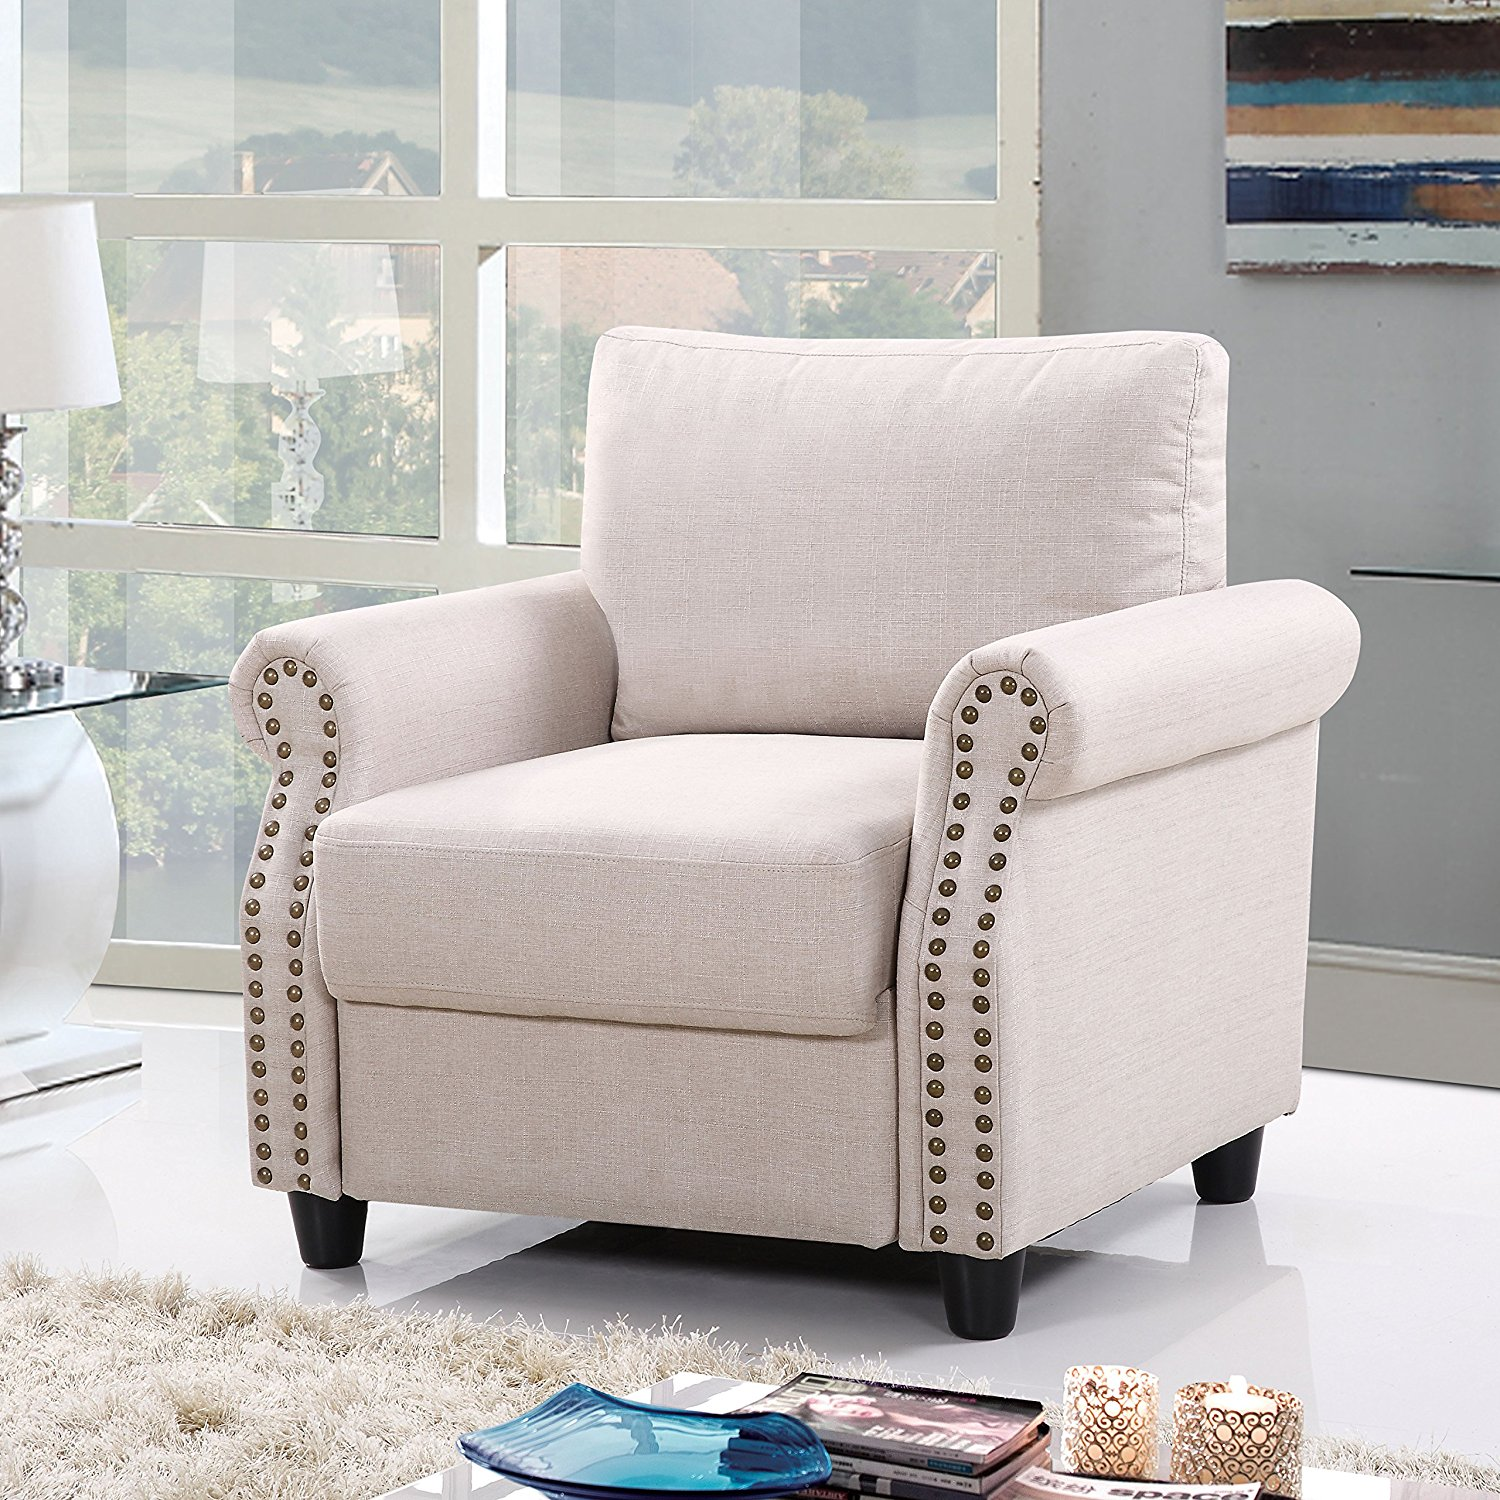 Top 10 Best Living Room Chairs in 2020